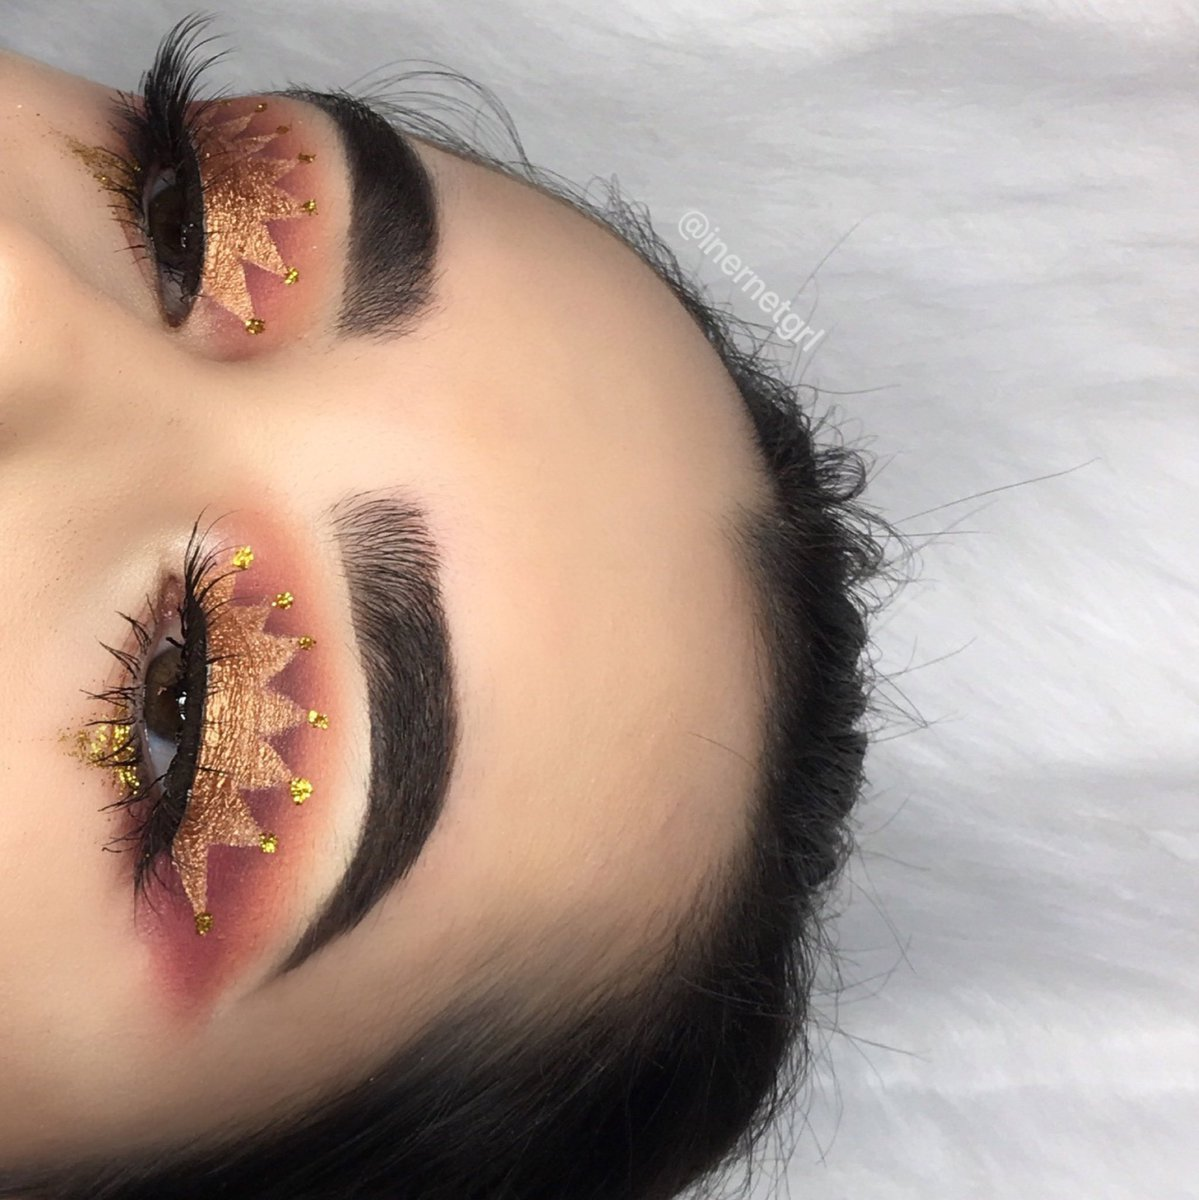 Princess Eye Makeup Is Here to Revive Your Childhood Dreams (Updated) - Allure